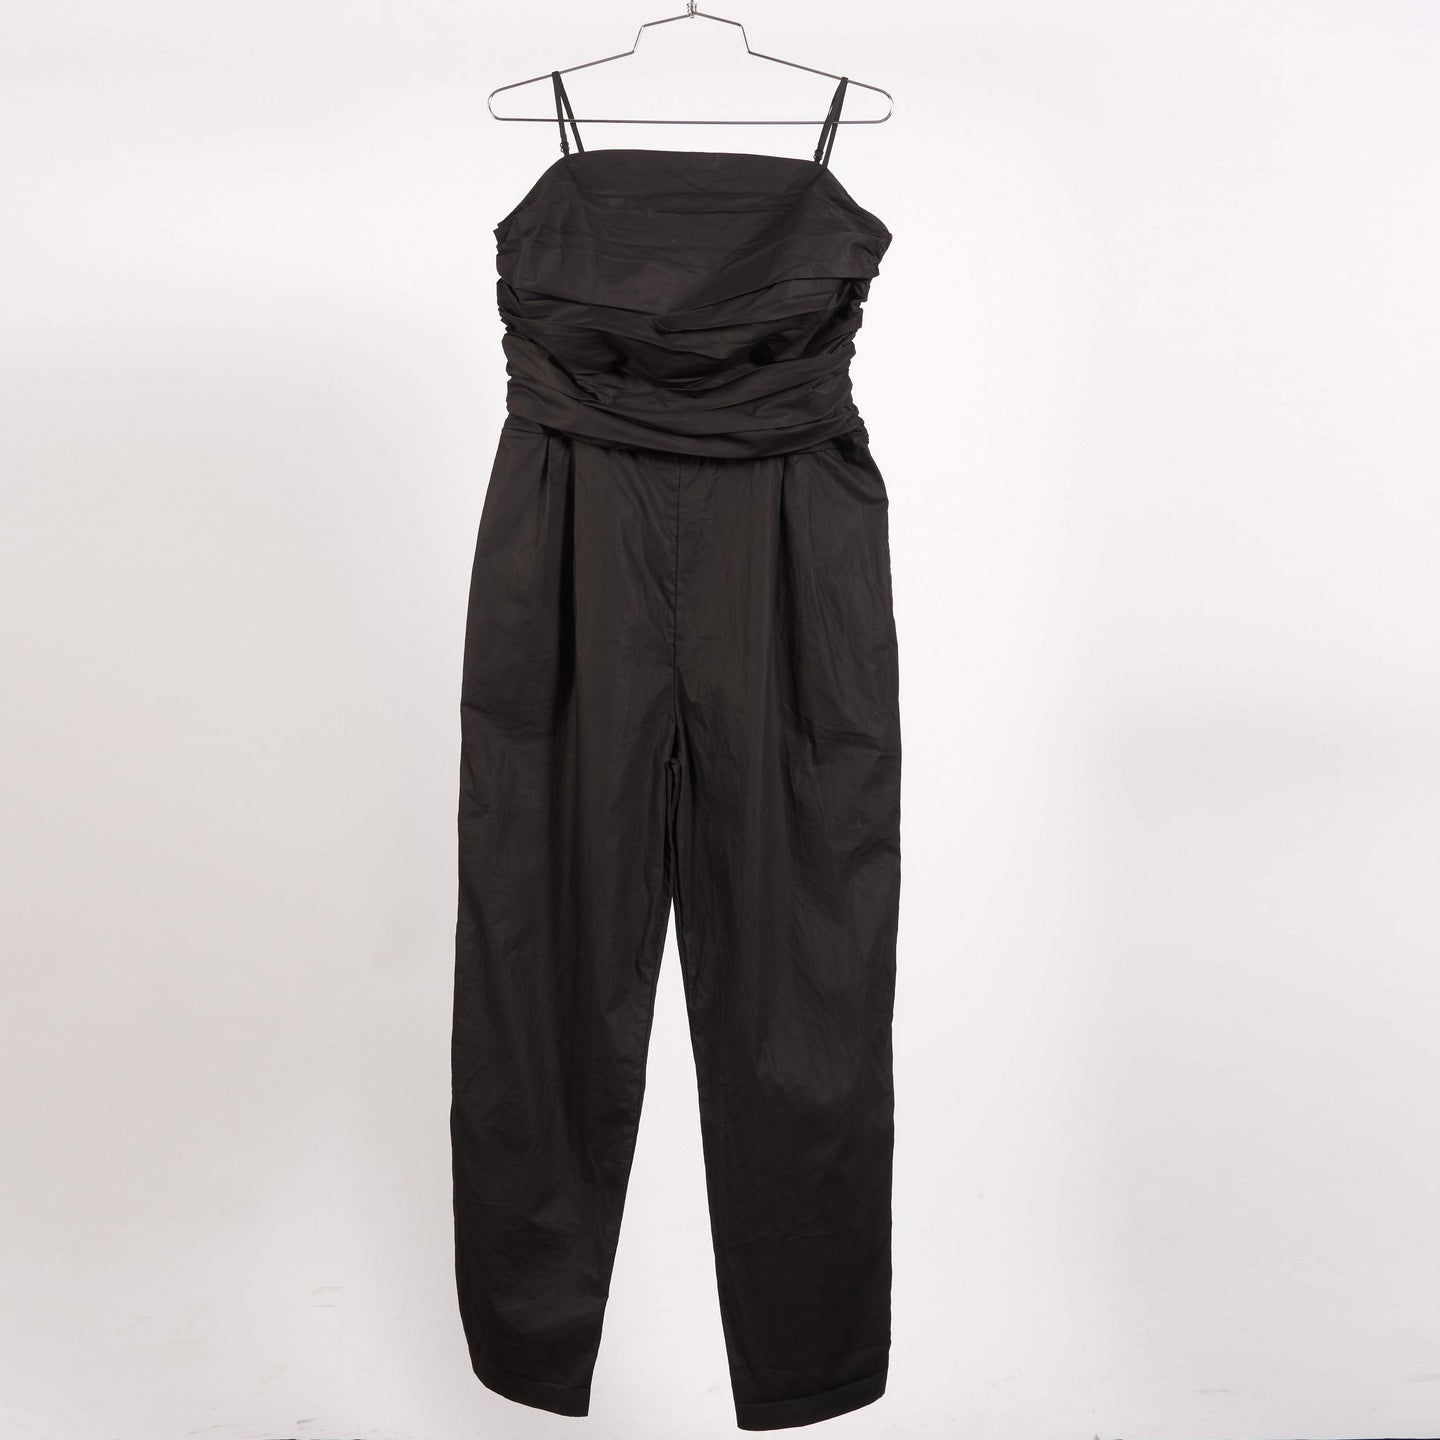 Black Thursday Night Jumpsuit (Size 2)